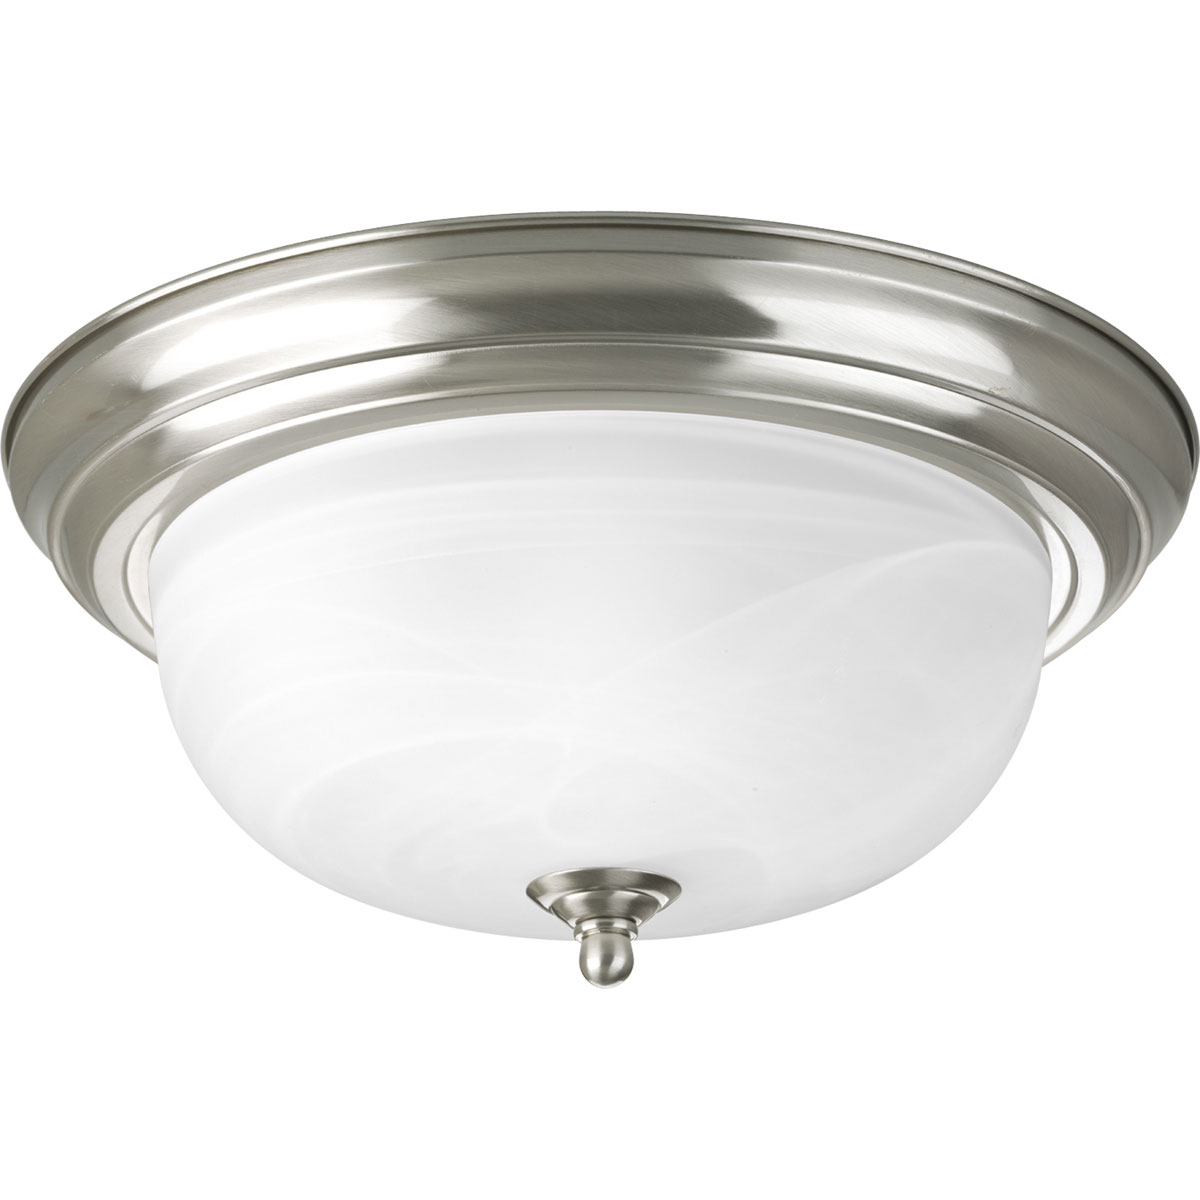 Progress Lighting (P3925-09) Alabaster 2 Light Flush Mount in Brushed Nickel